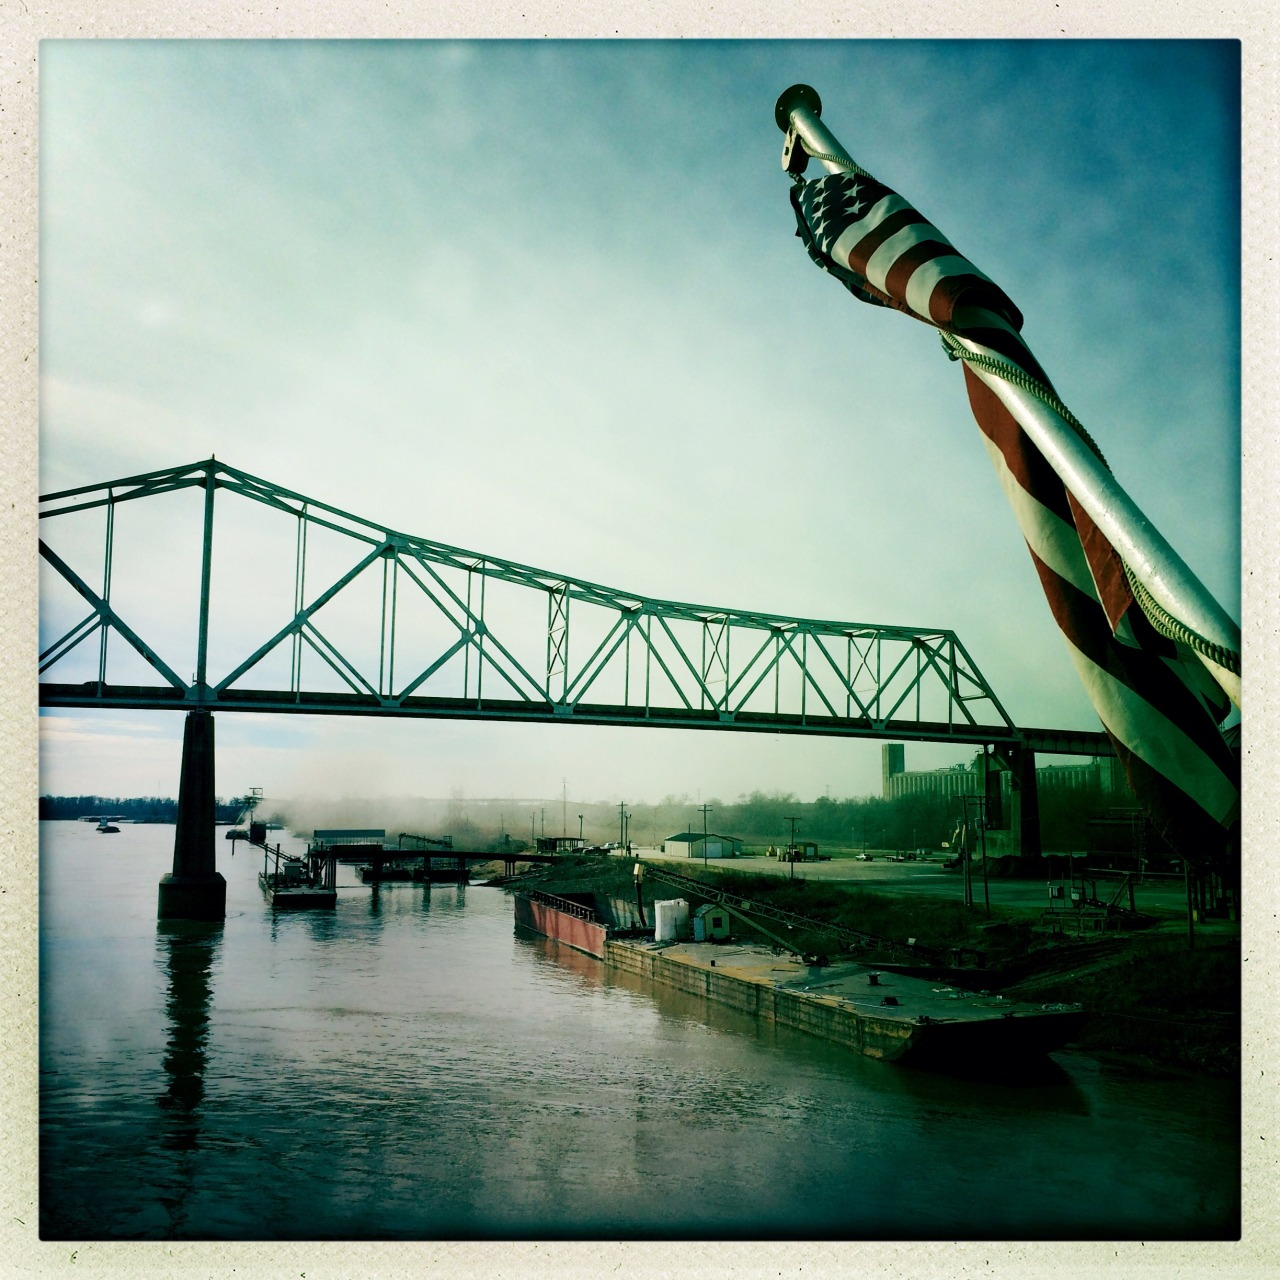 America's Industrial River #Mississippi #Elena